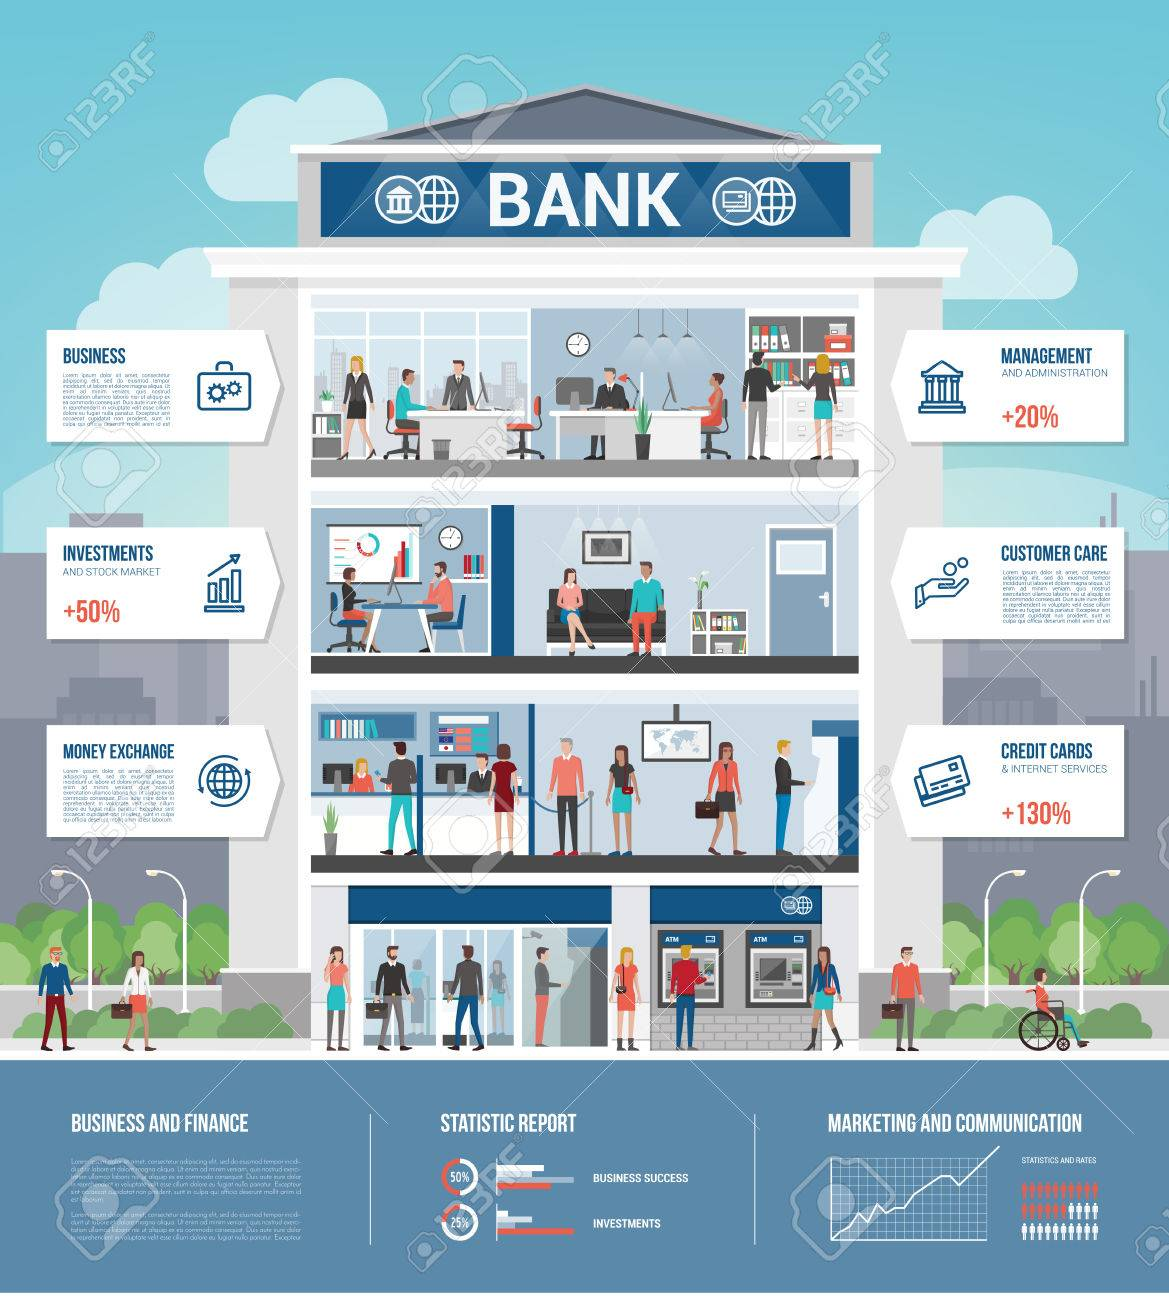 Bank building and finance infographic with interiors, text, icons set and people working - 52961180